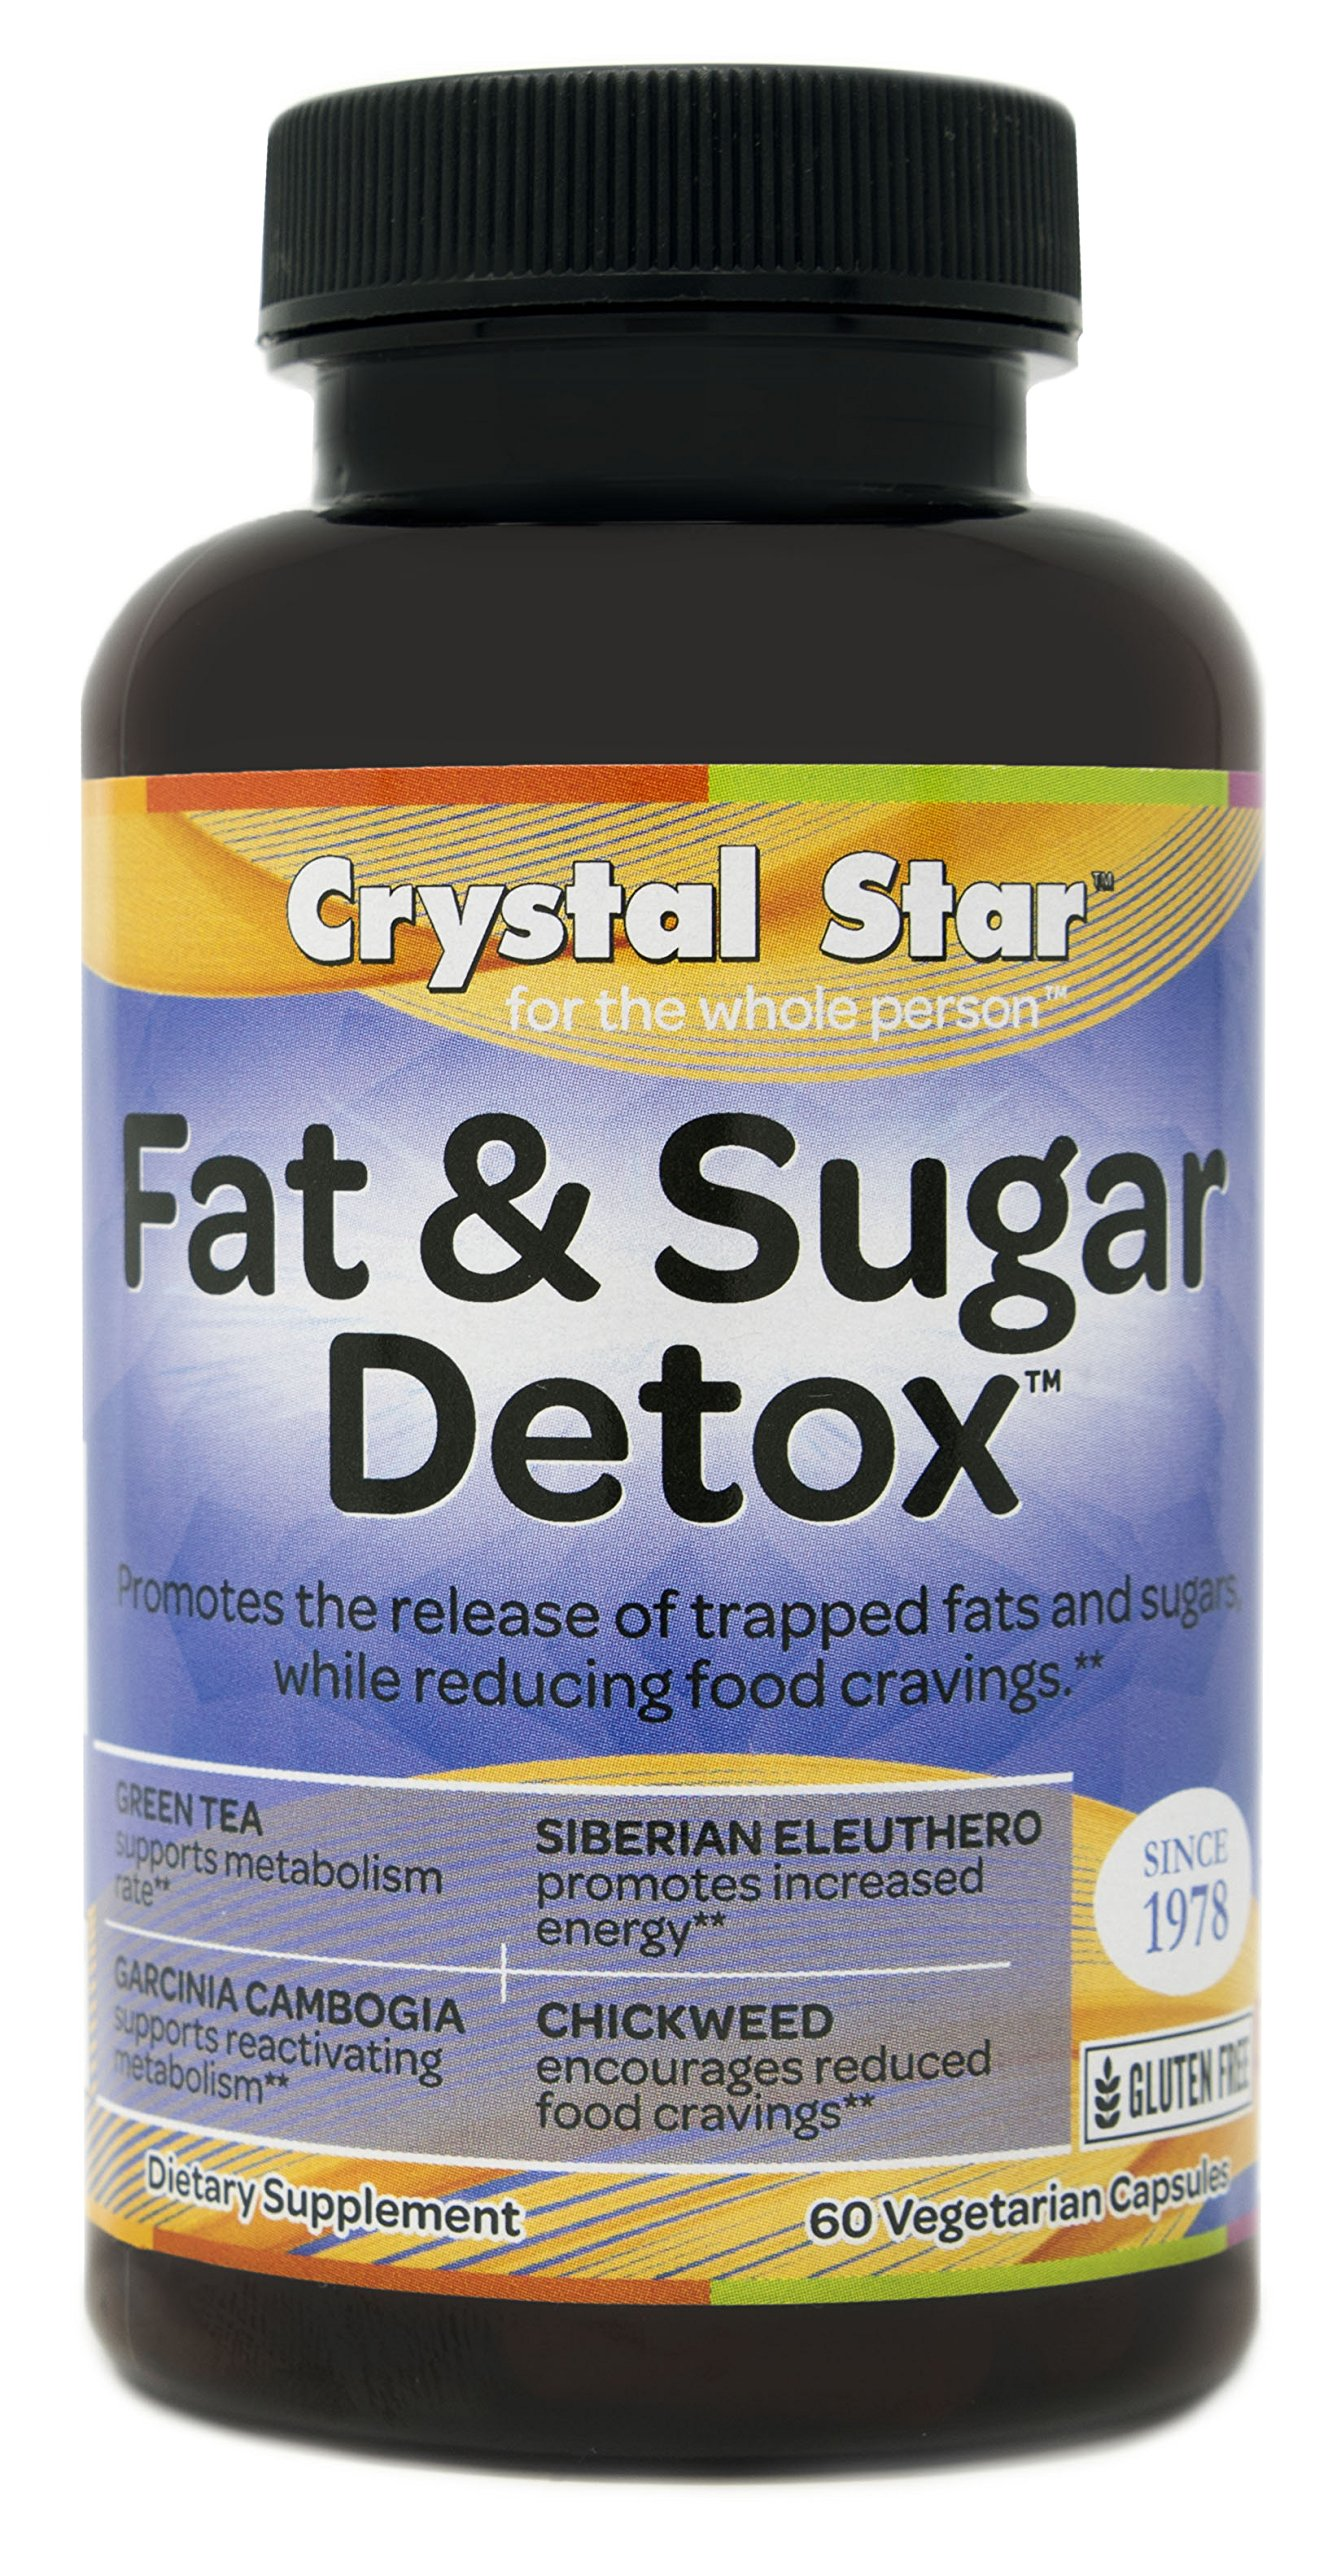 Crystal Star Fat and Sugar Detox Herbal Supplements, 60 Count by Crystal Star